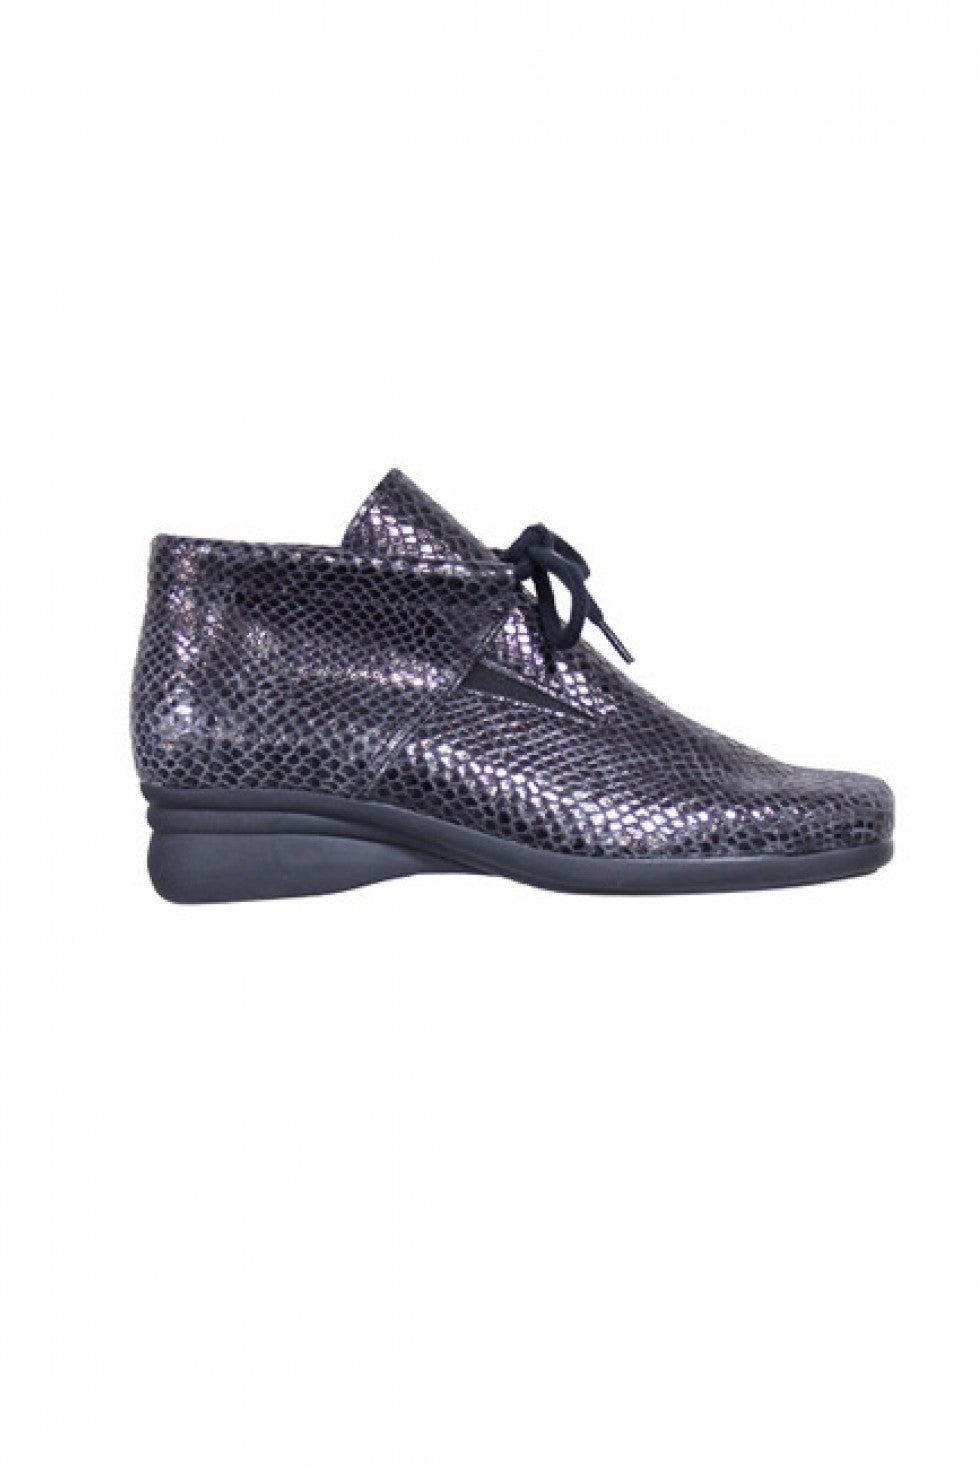 The Hirica Genna Boot Black Python Style and Grace